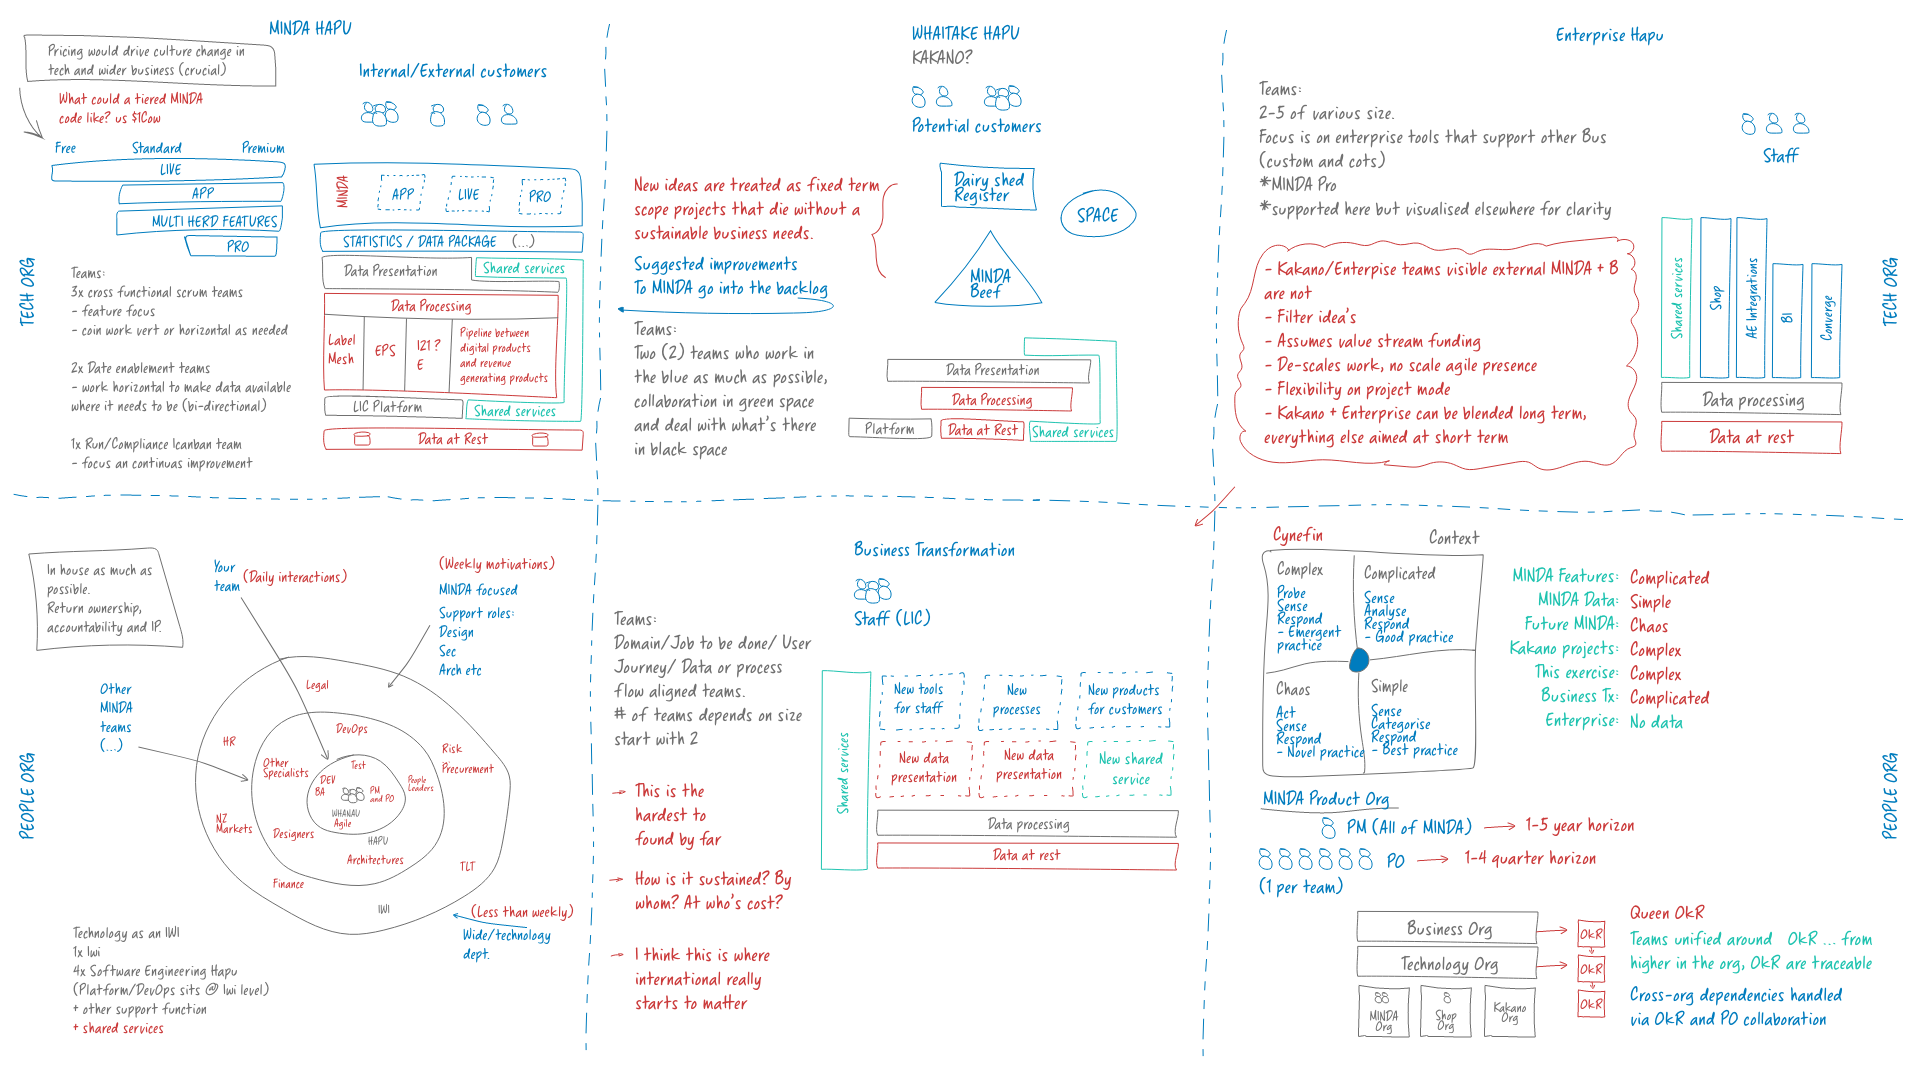 The front page of the team topologies I designed in April 2020